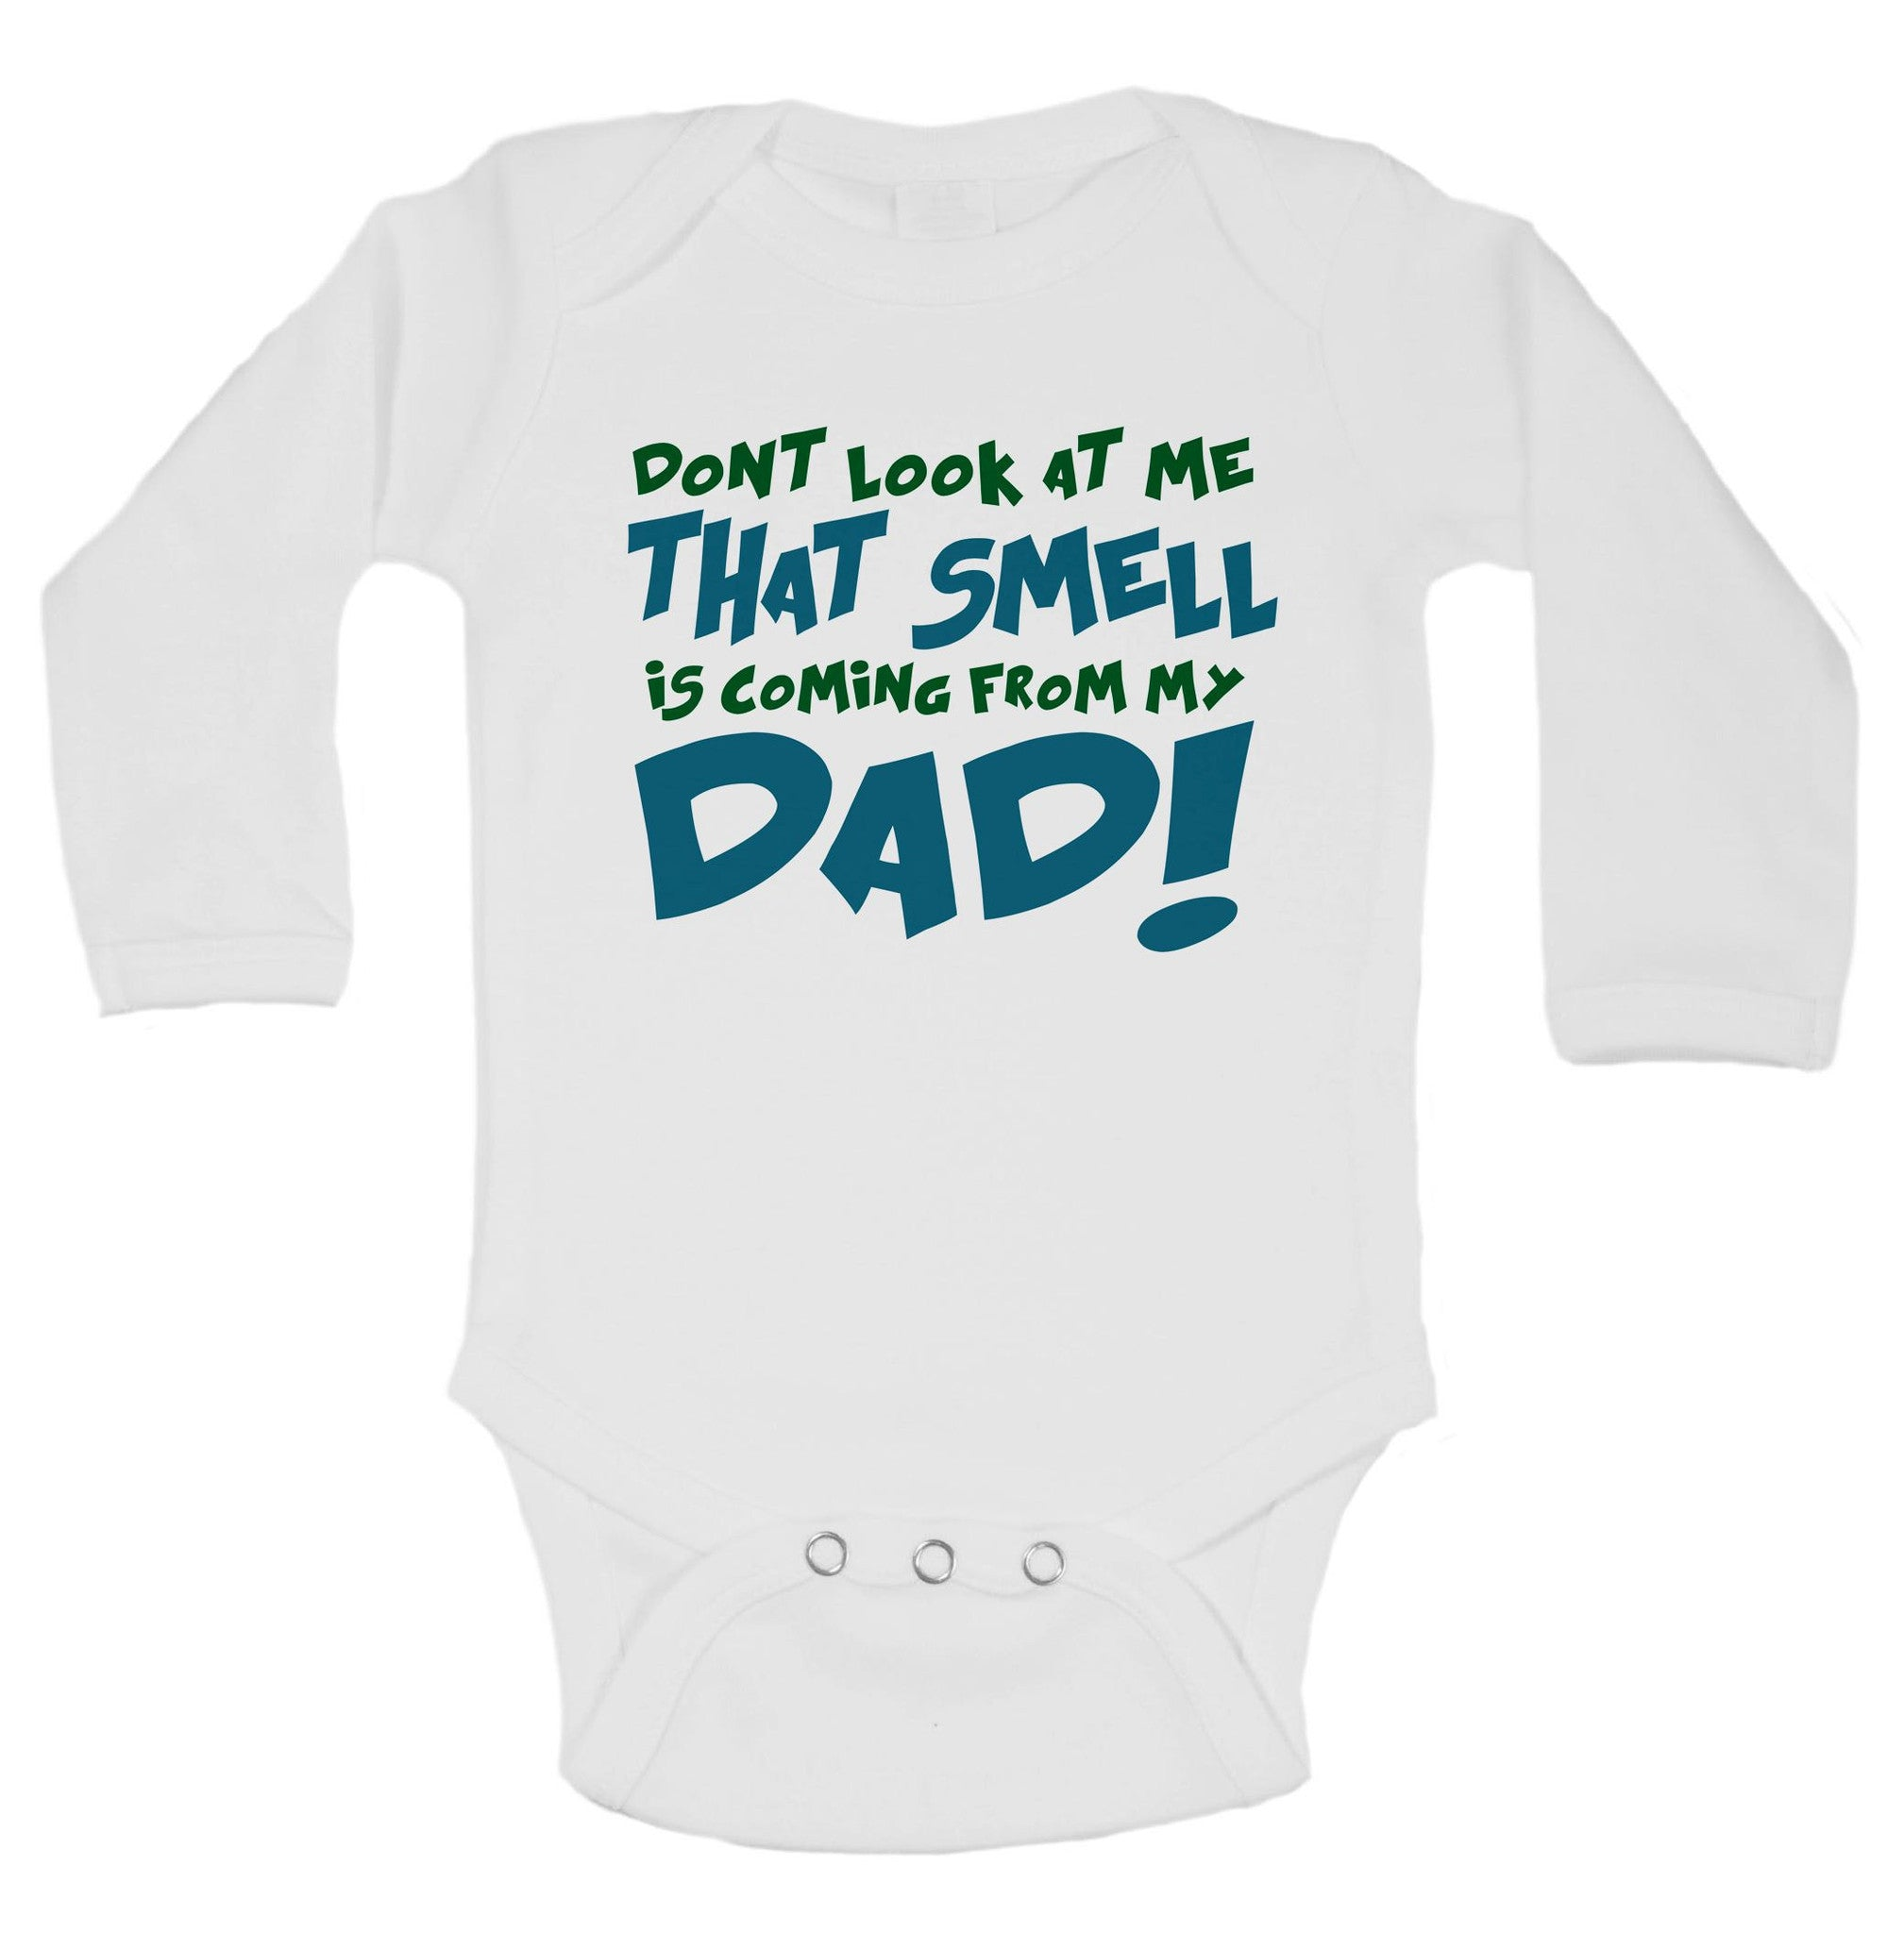 Dont Look At Me That Smell Is Coming From My Dad! Funny Kids Onesie - B39 - Funny Shirts Tank Tops Burnouts and Triblends  - 1